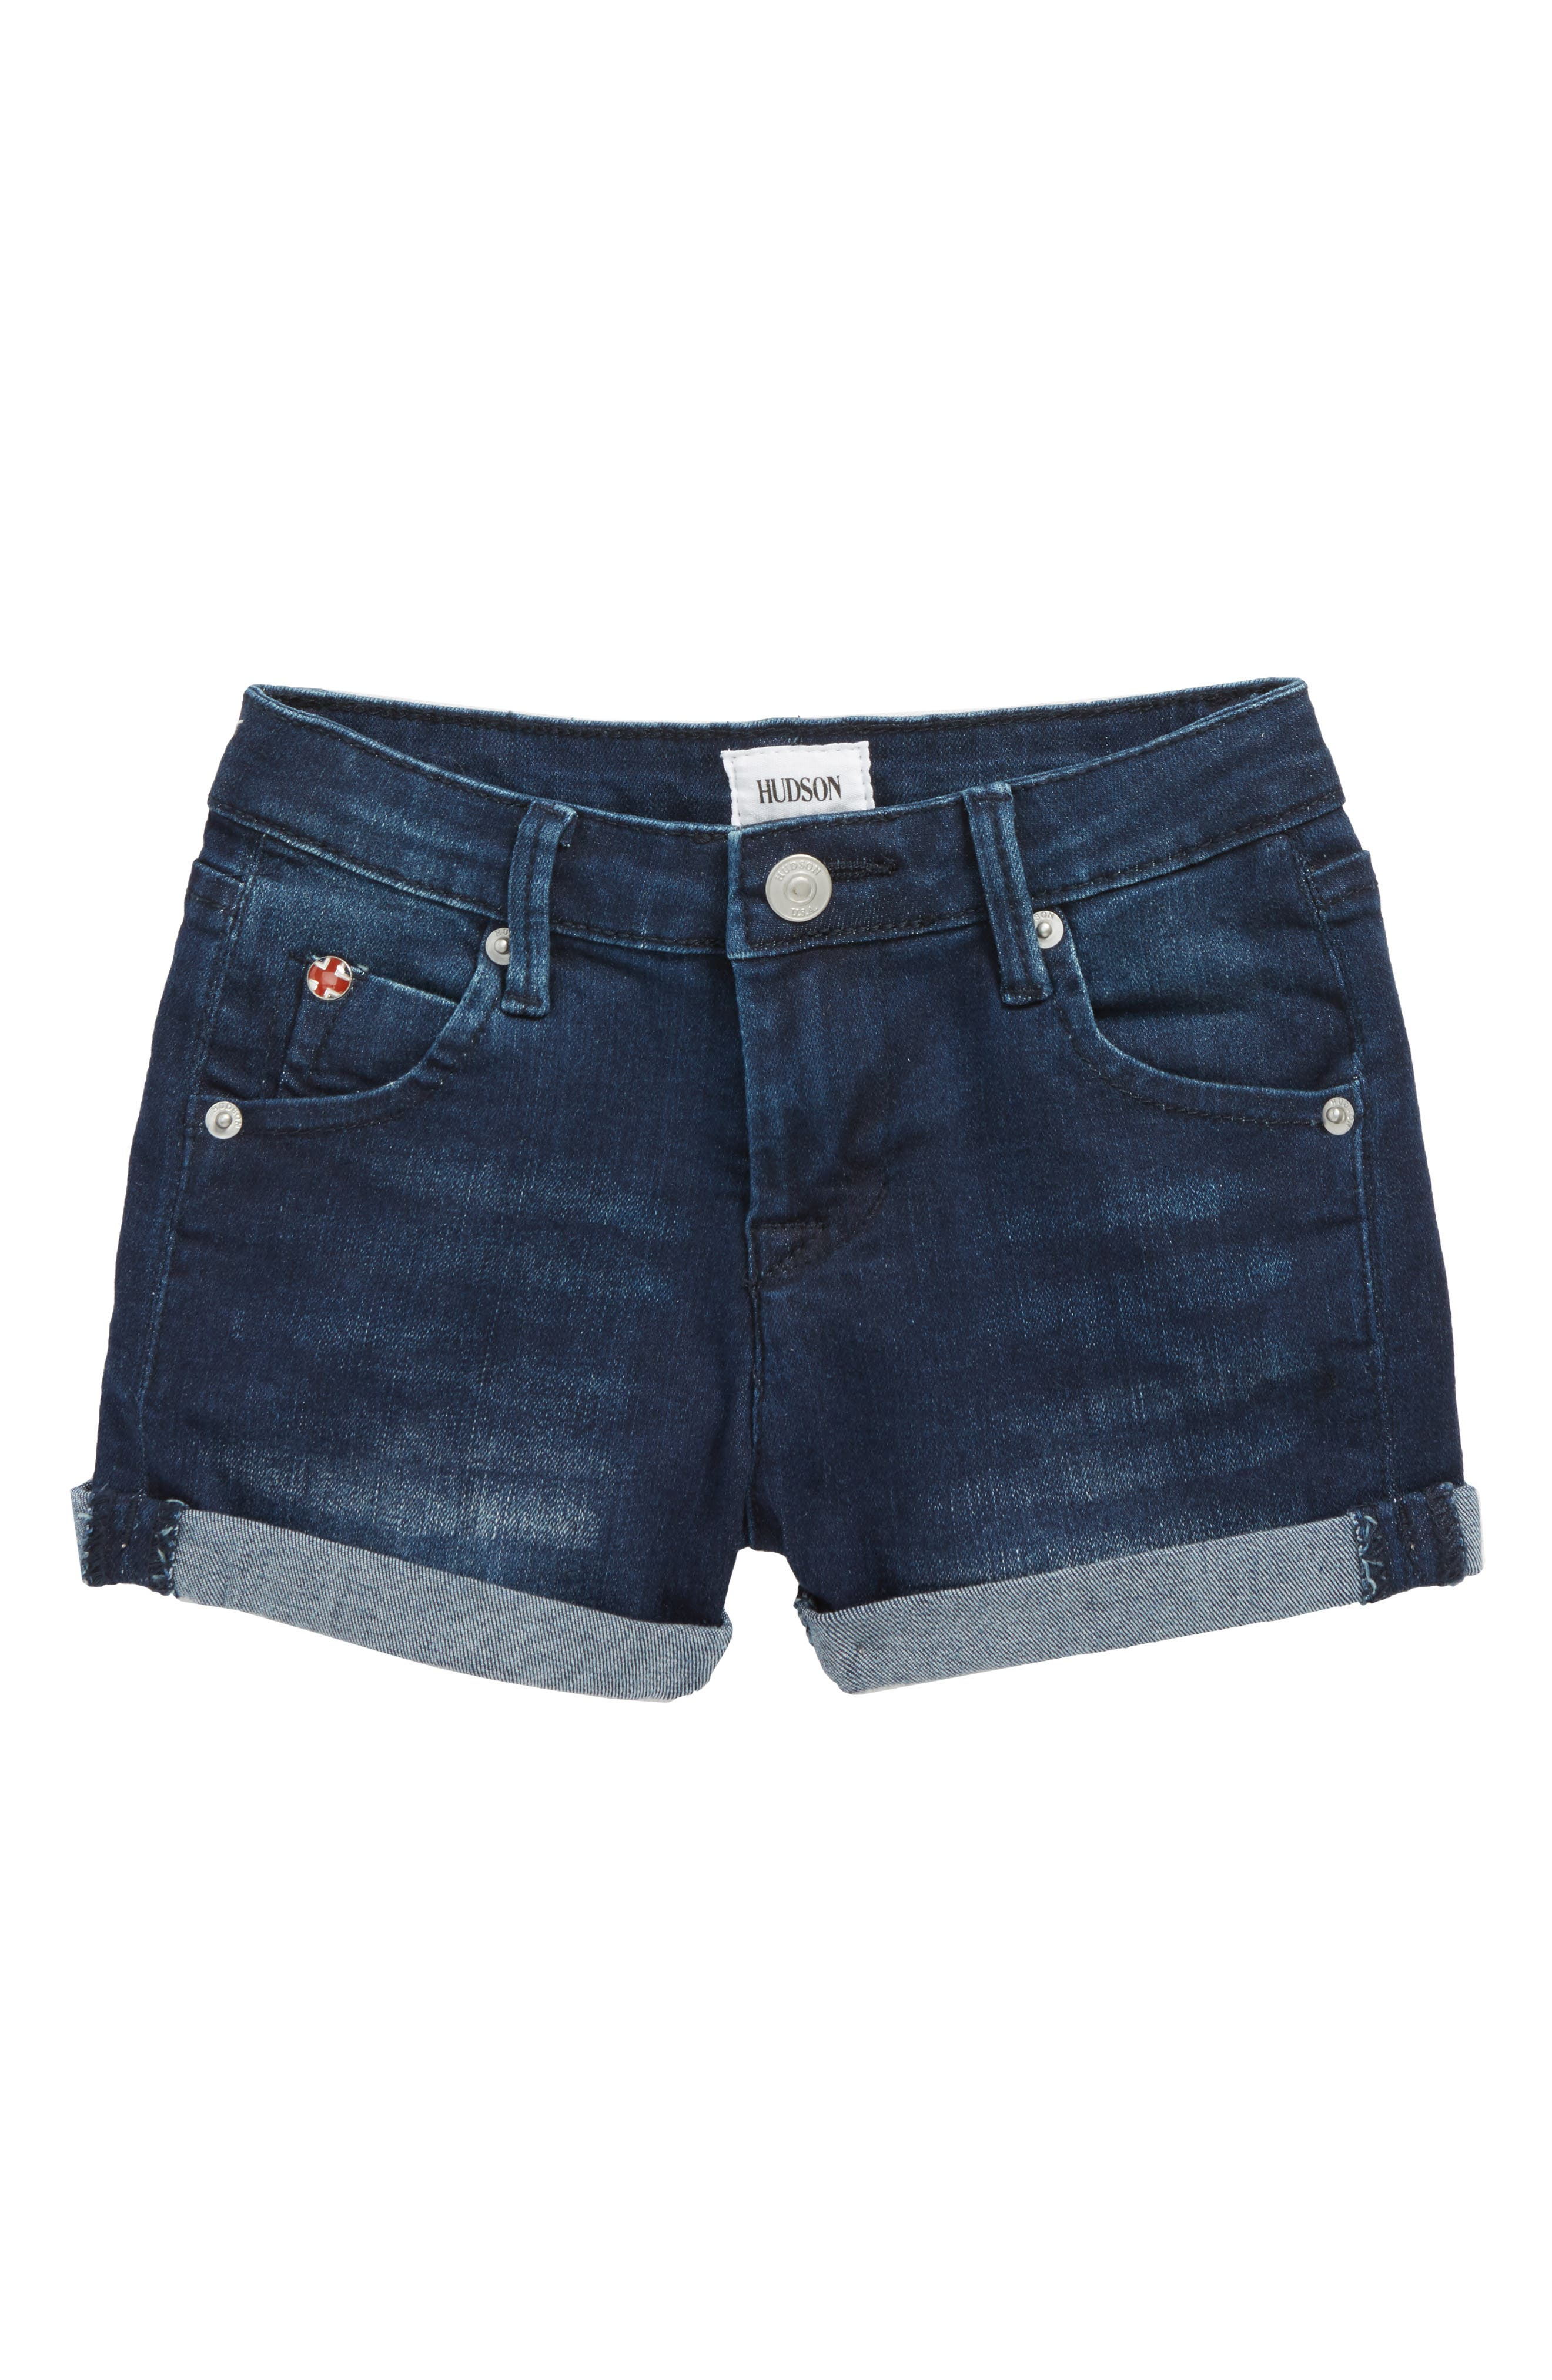 Roll Cuff Denim Shorts,                         Main,                         color, 427